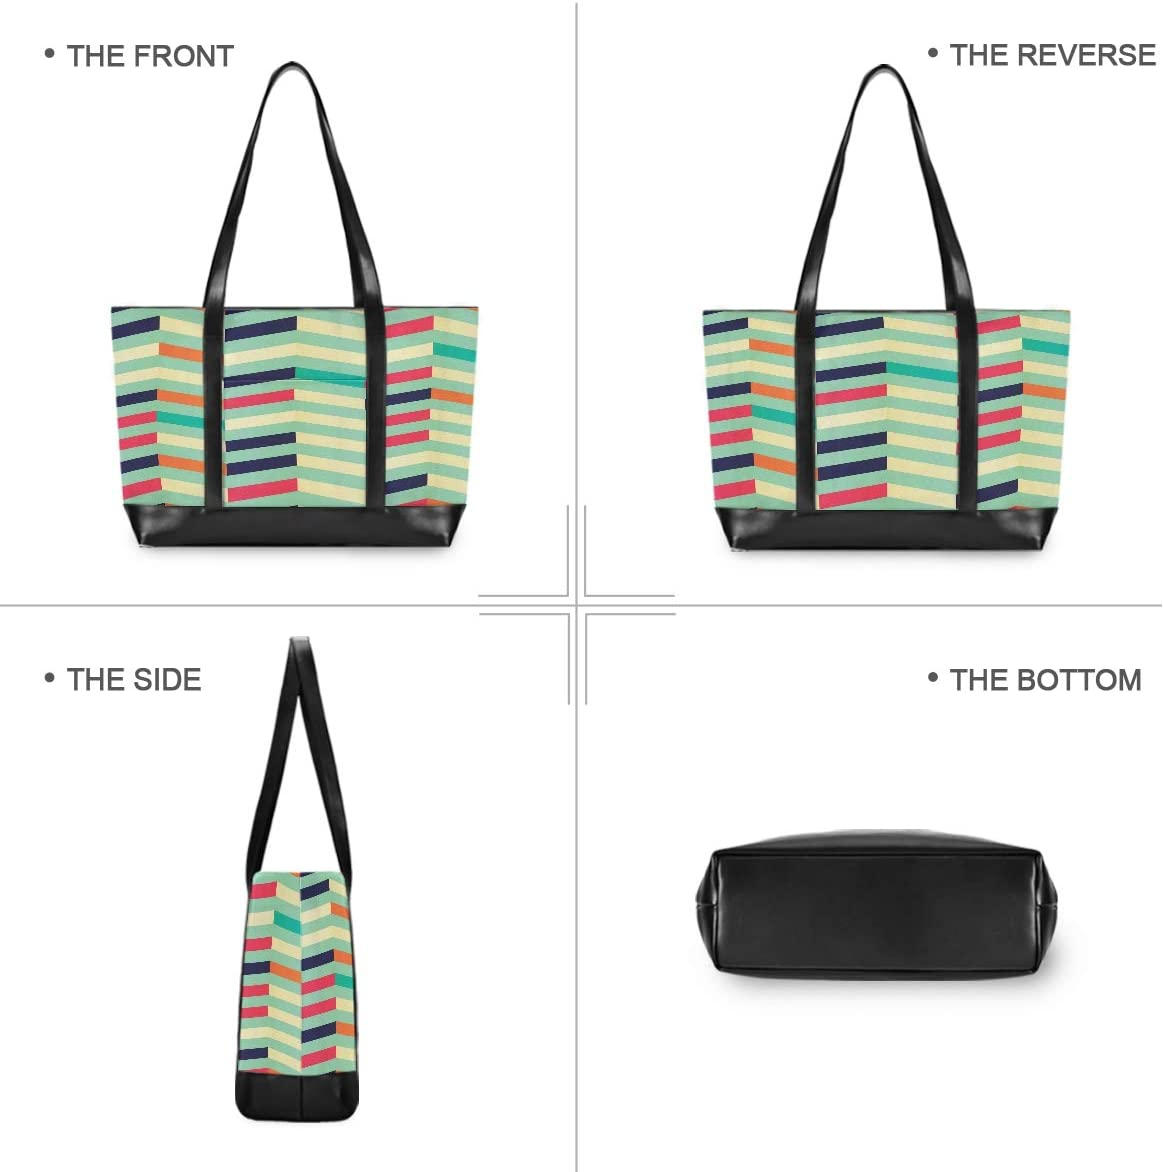 Large Woman Laptop Tote Bag Abstract Color Stripes Canvas Shoulder Tote Bag Fit 15.6 Inch Computer Laptop Bags for Work School Hiking Trekking